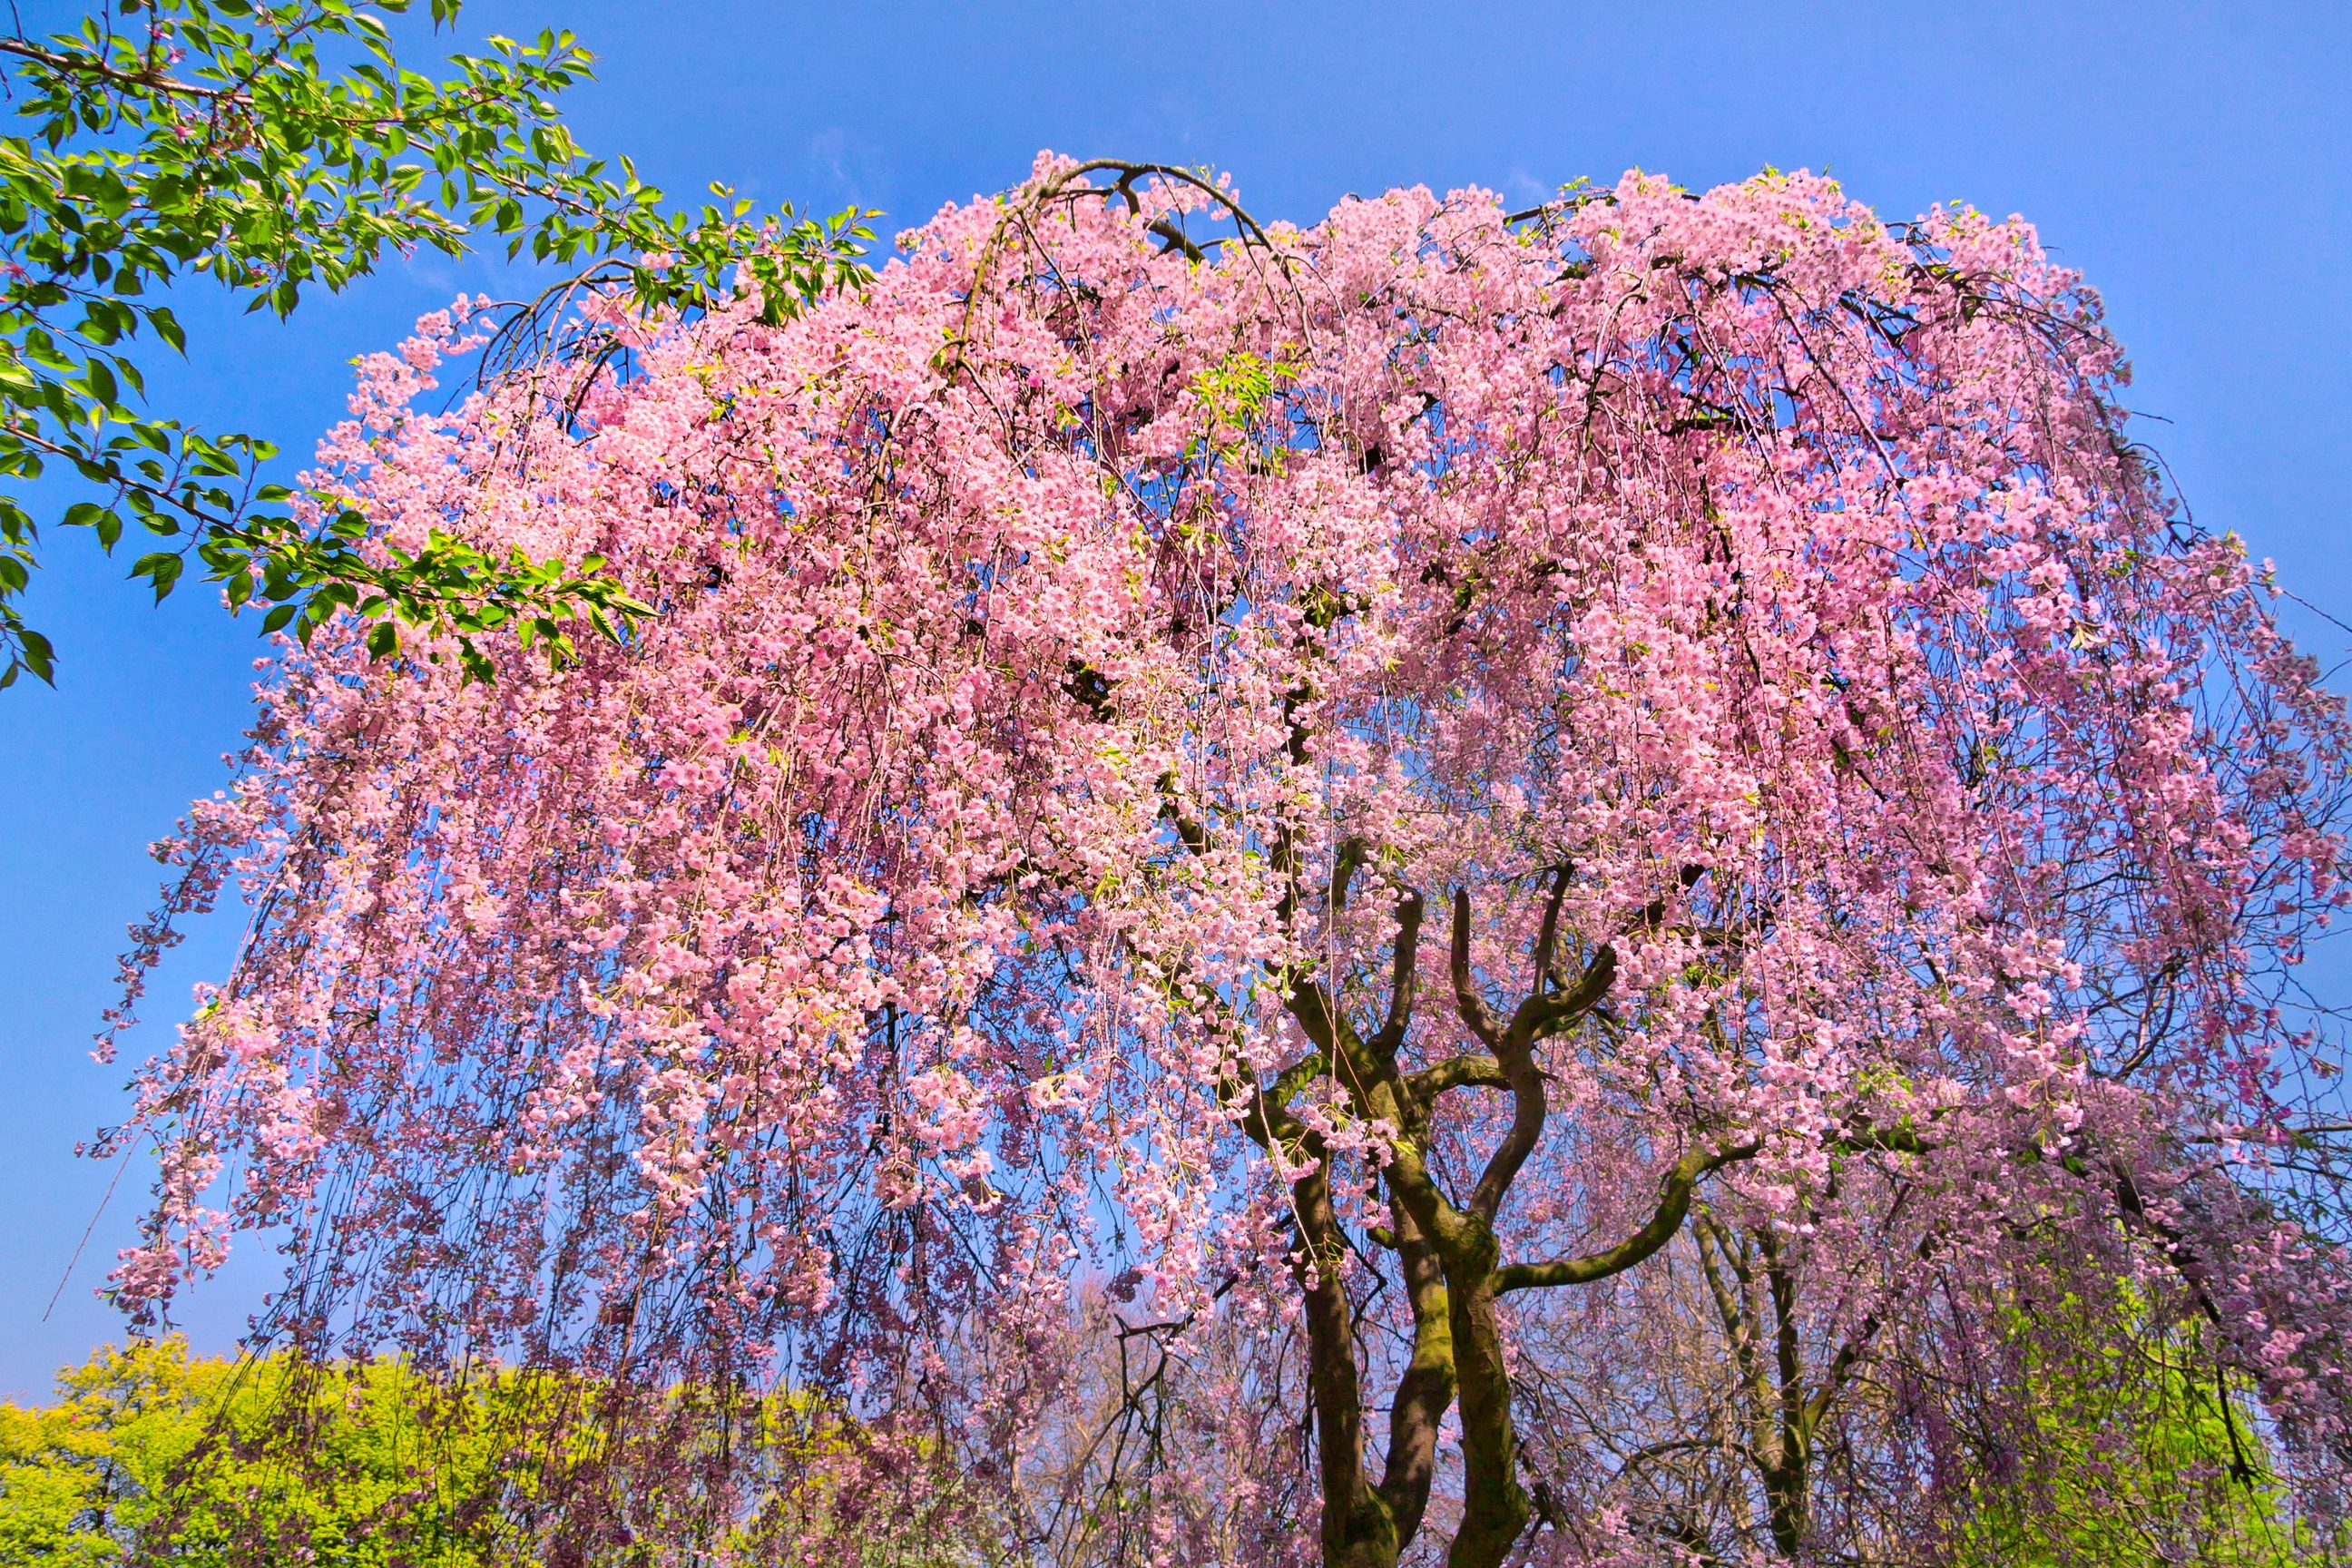 cherry blossom pictures - HD2592×1728